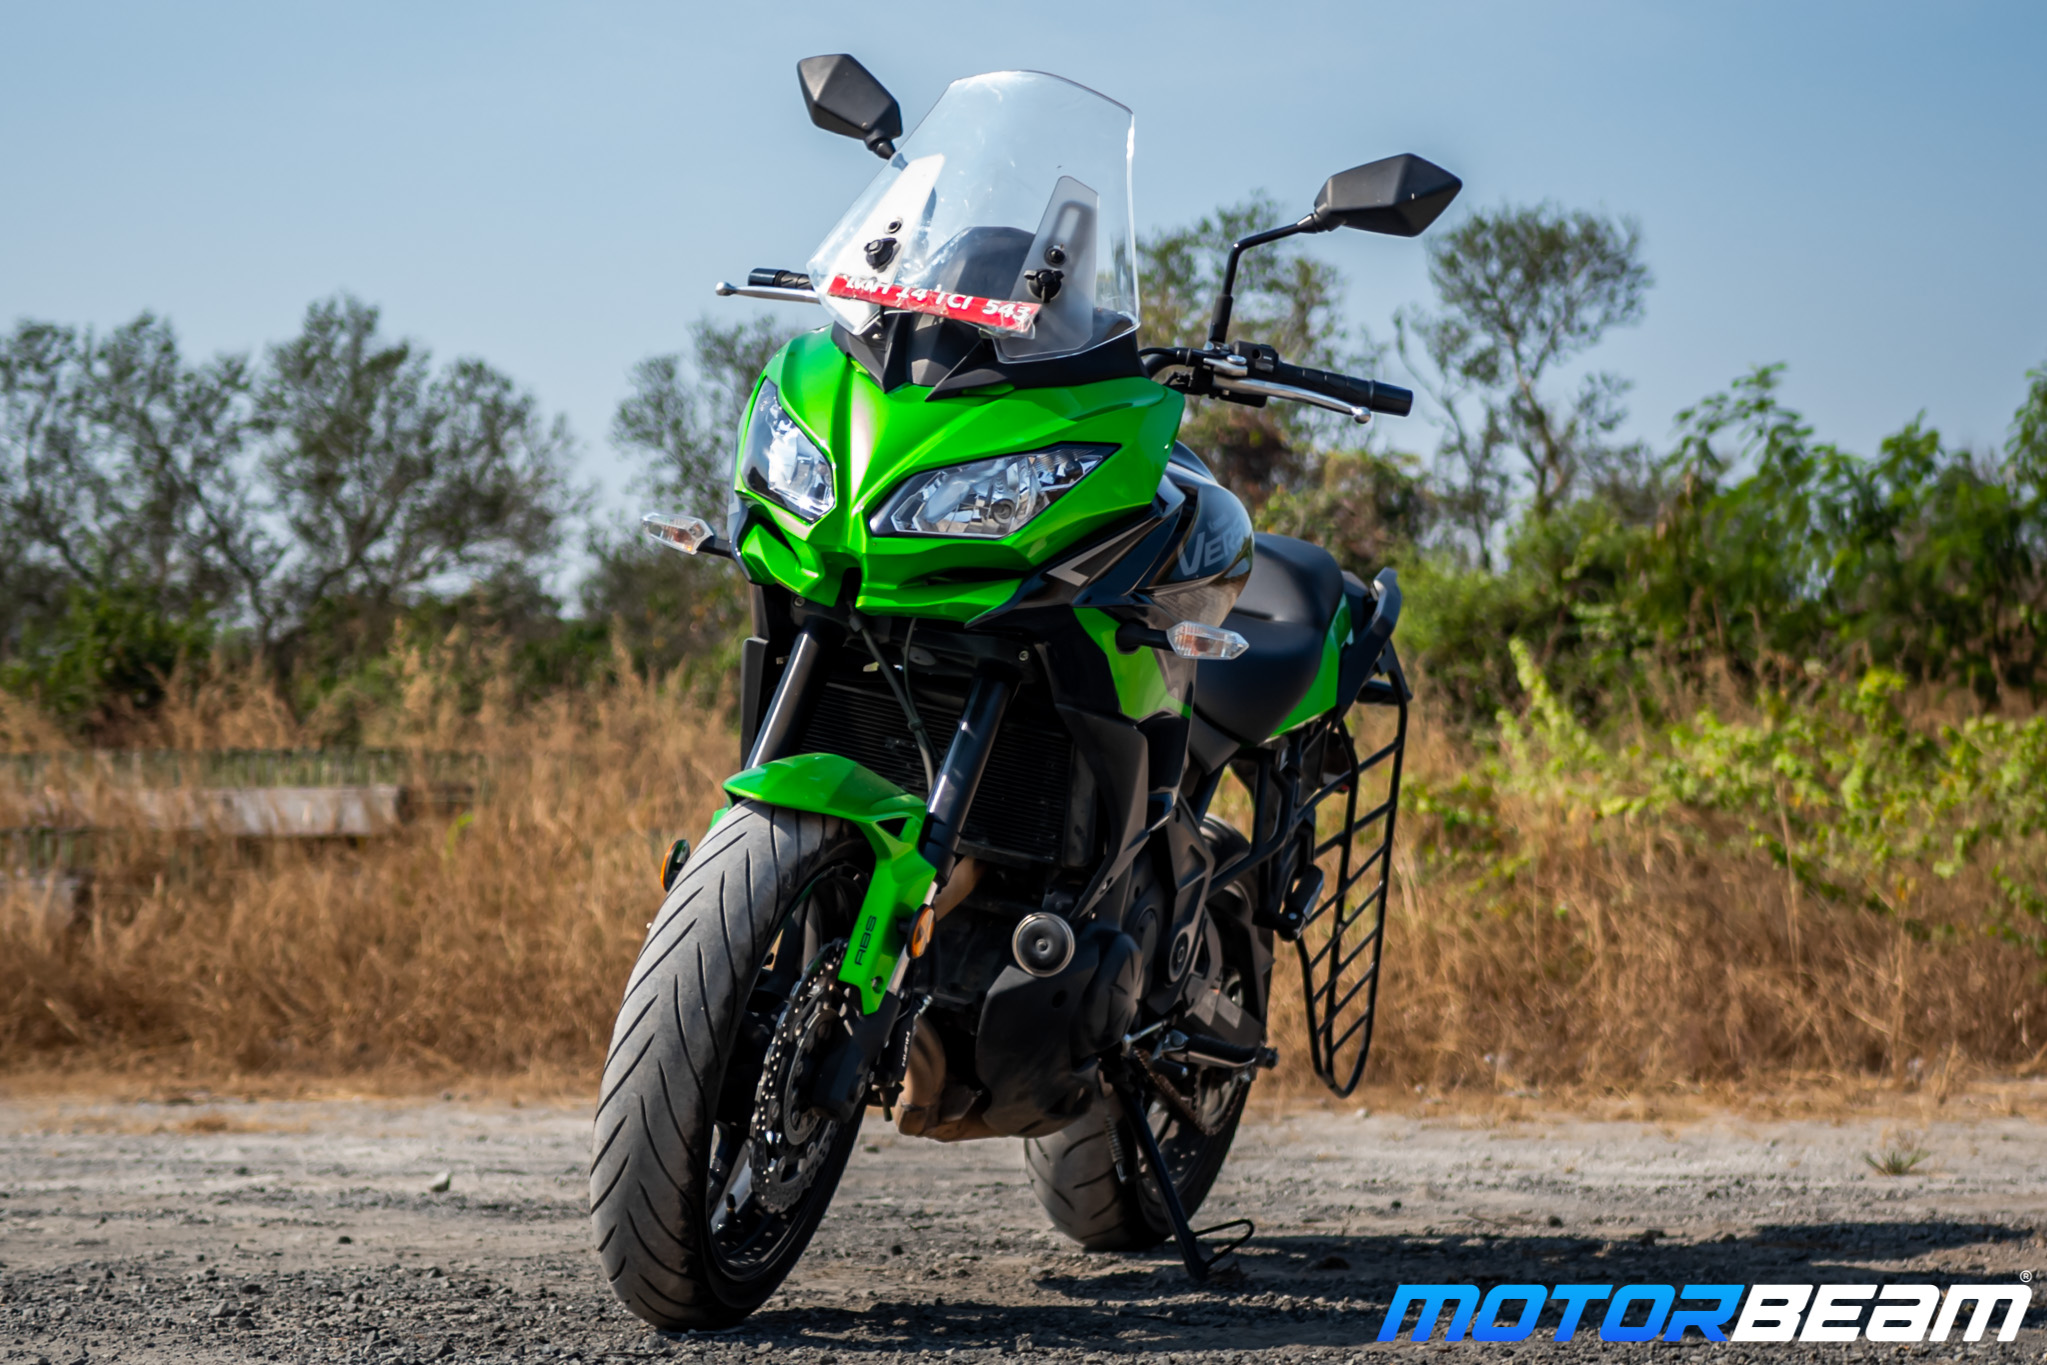 2021 Kawasaki Versys 650 Review 3